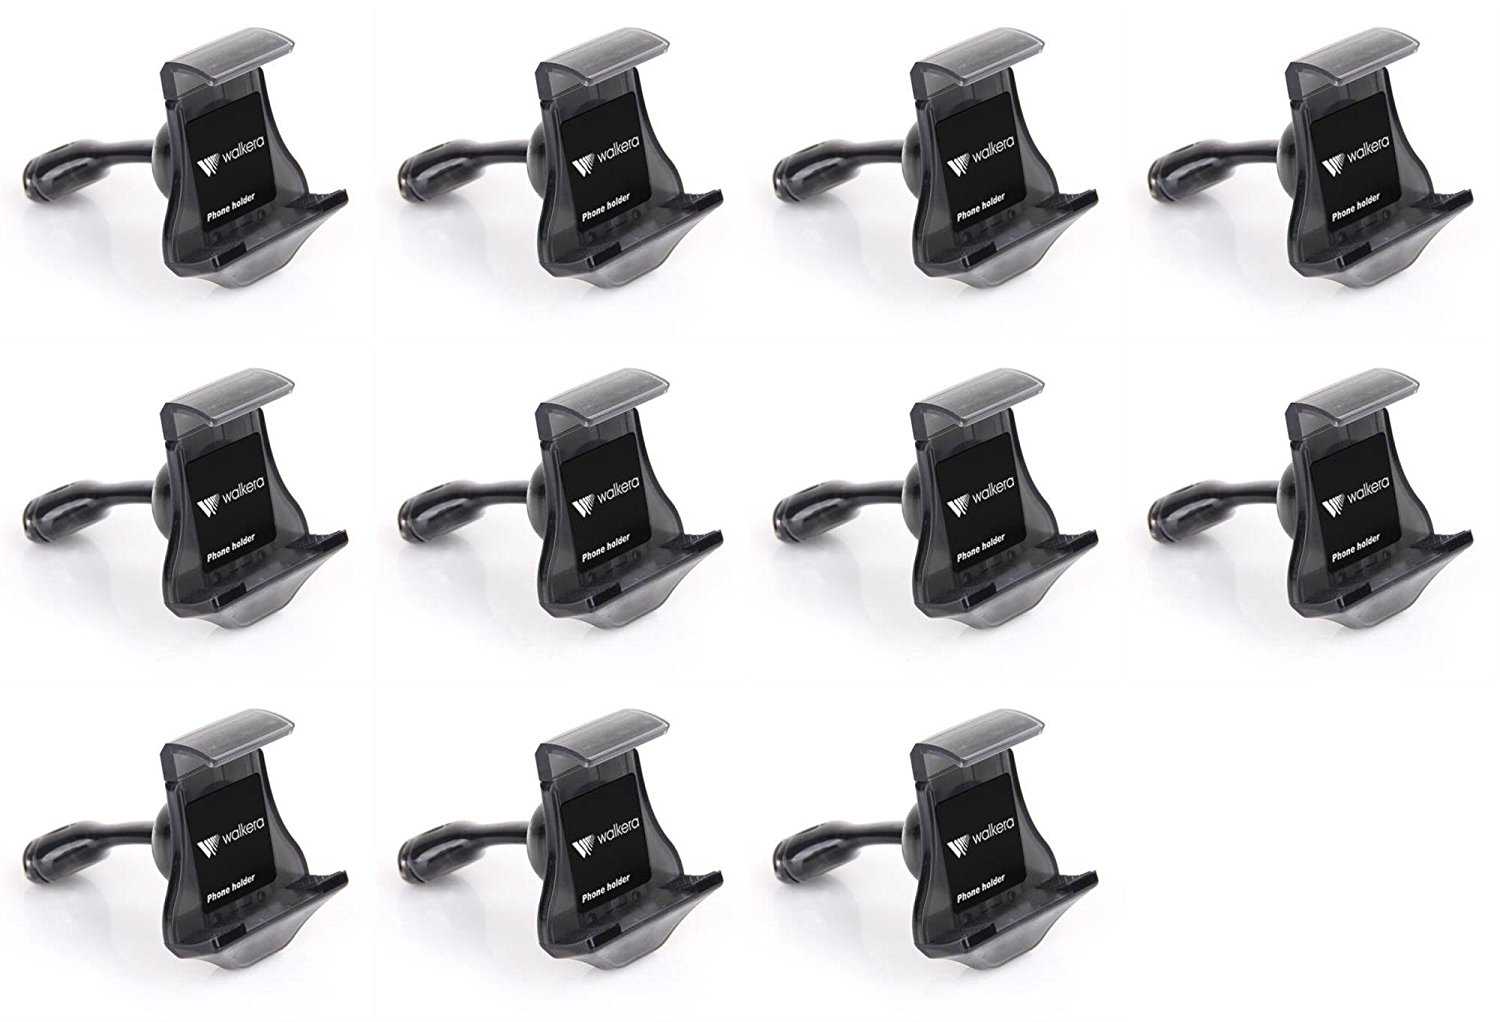 11 x Quantity of Helicopter Quadcopter Airplane Boat Car Controller Phone Holder B for Devo Transmitters by